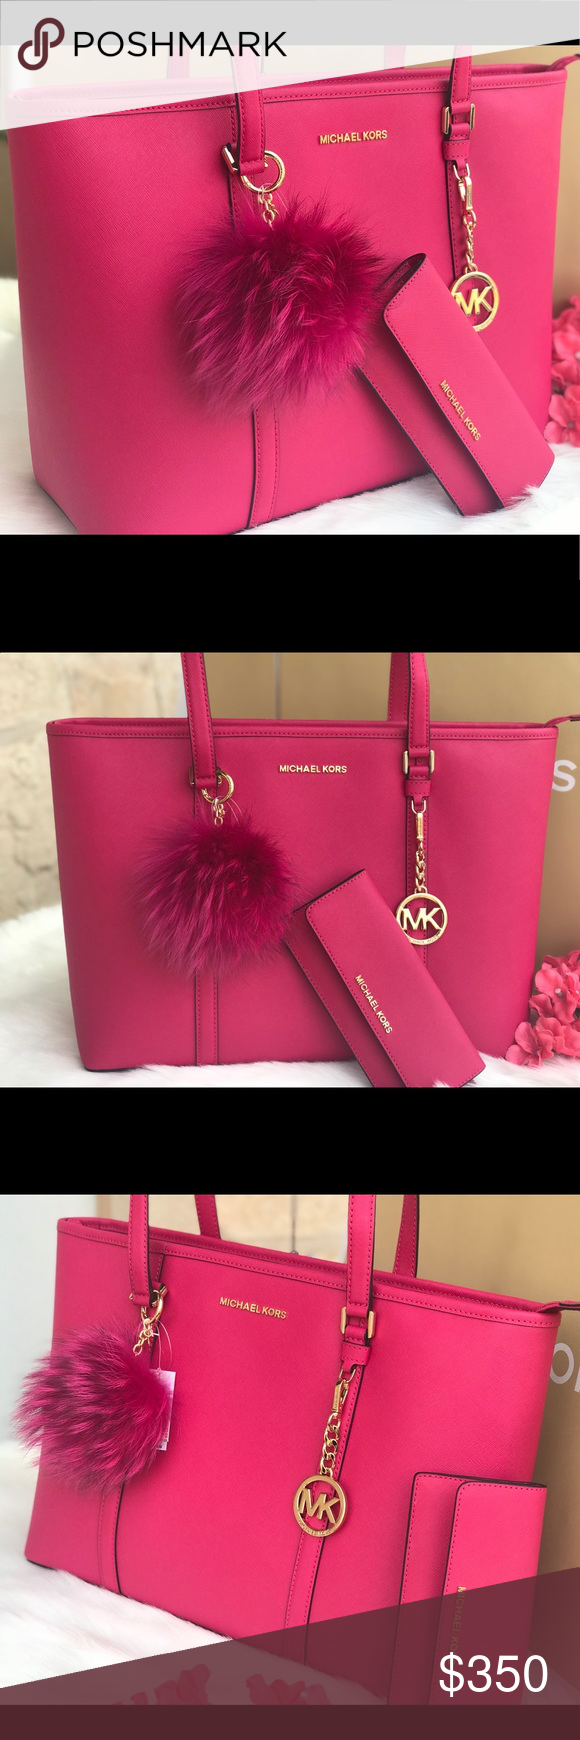 1be42b632eaa 🌷MICHAEL KORS Ultra Pink Large Leather Tote Set MICHAEL KORS Large Leather  Ultra Pink Sady Tote Set 🌷Pom Pom is not included